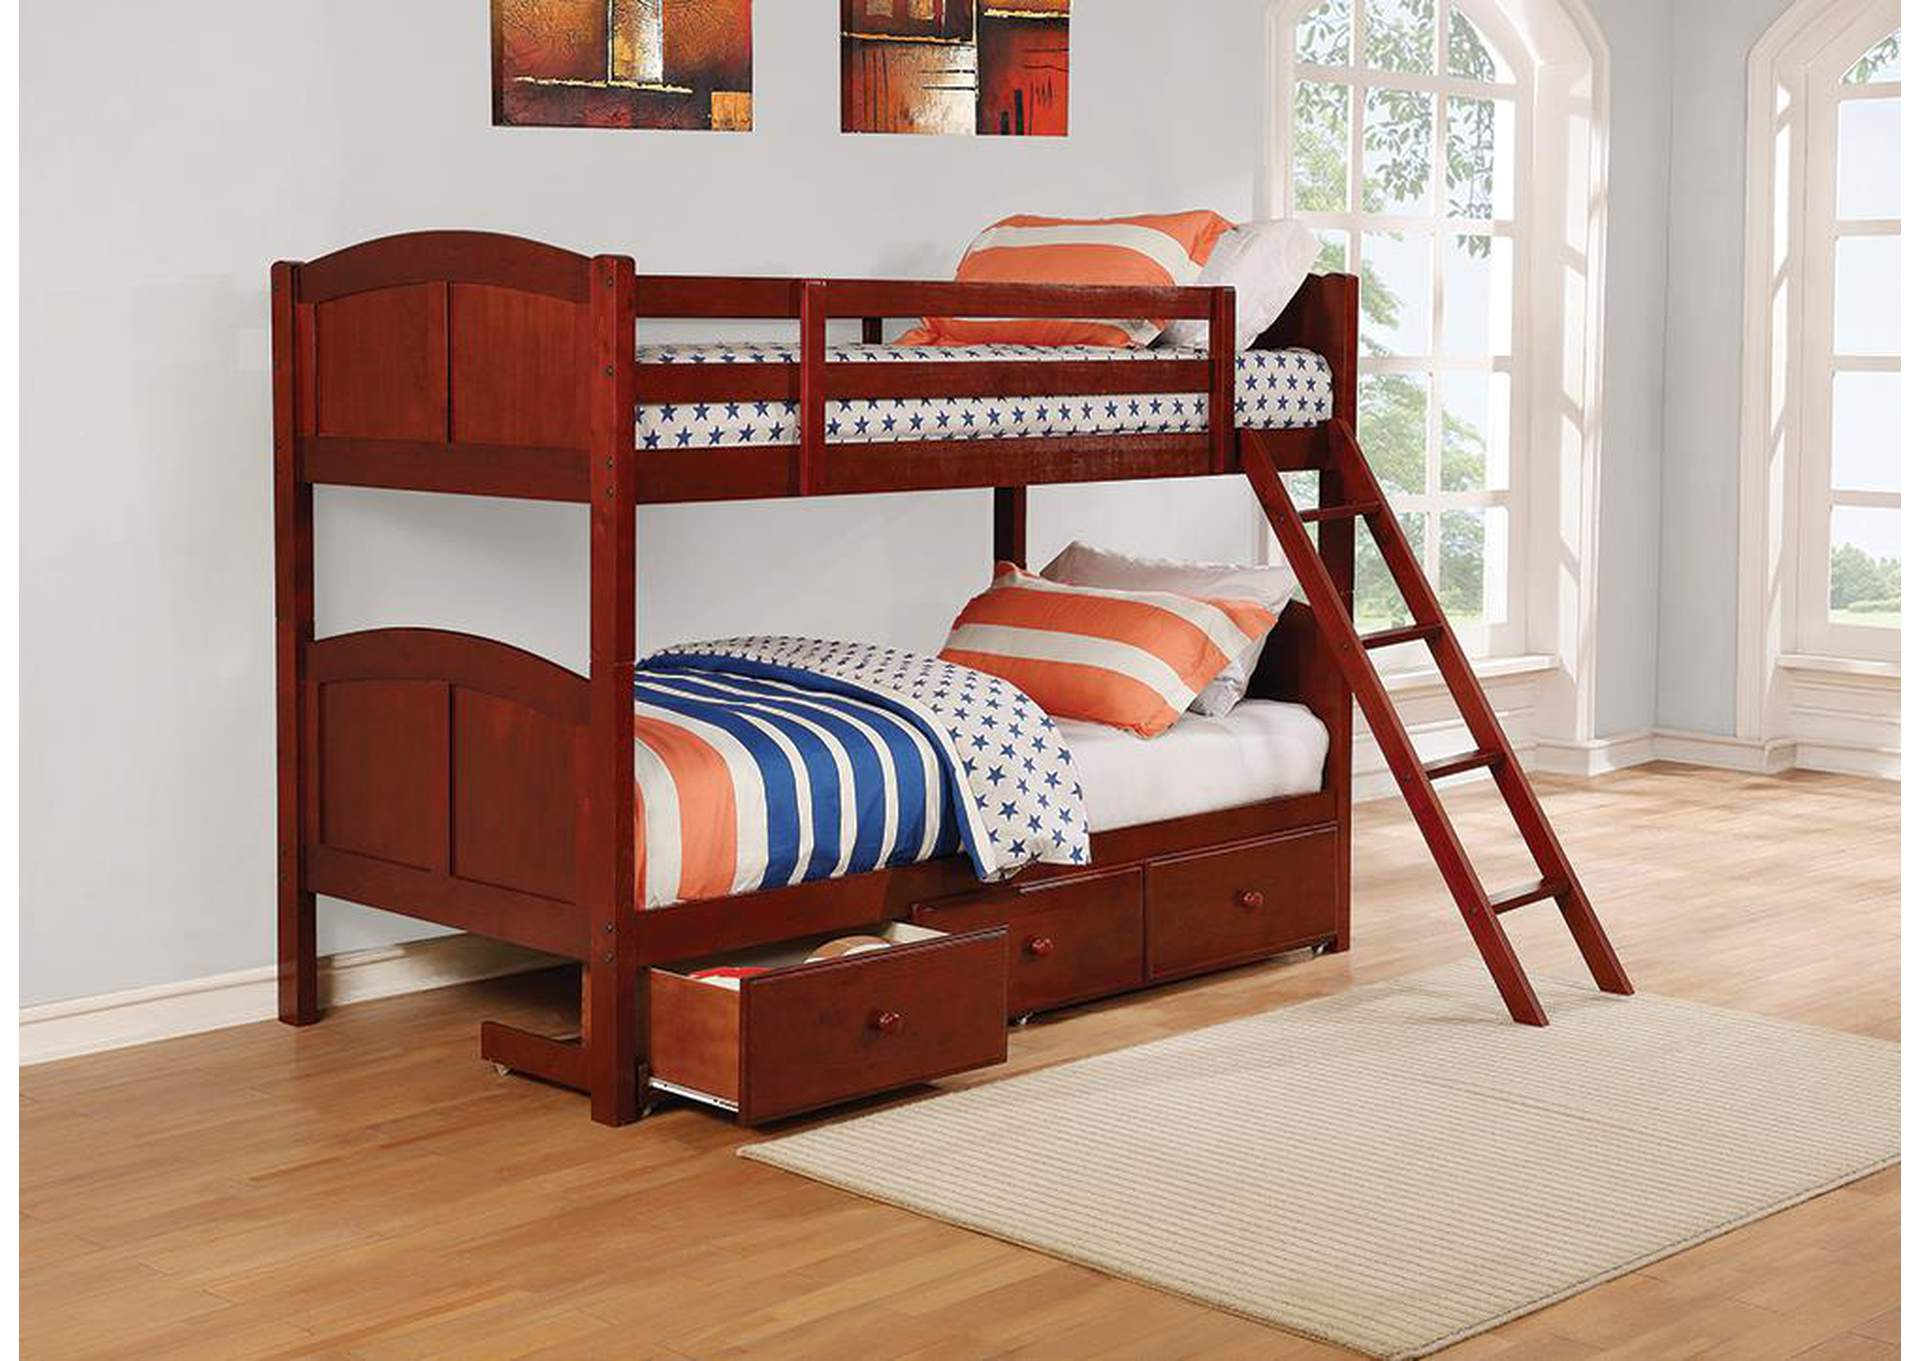 Parker Chestnut Panel Twin-over-Twin Bunk Bed,Coaster Furniture